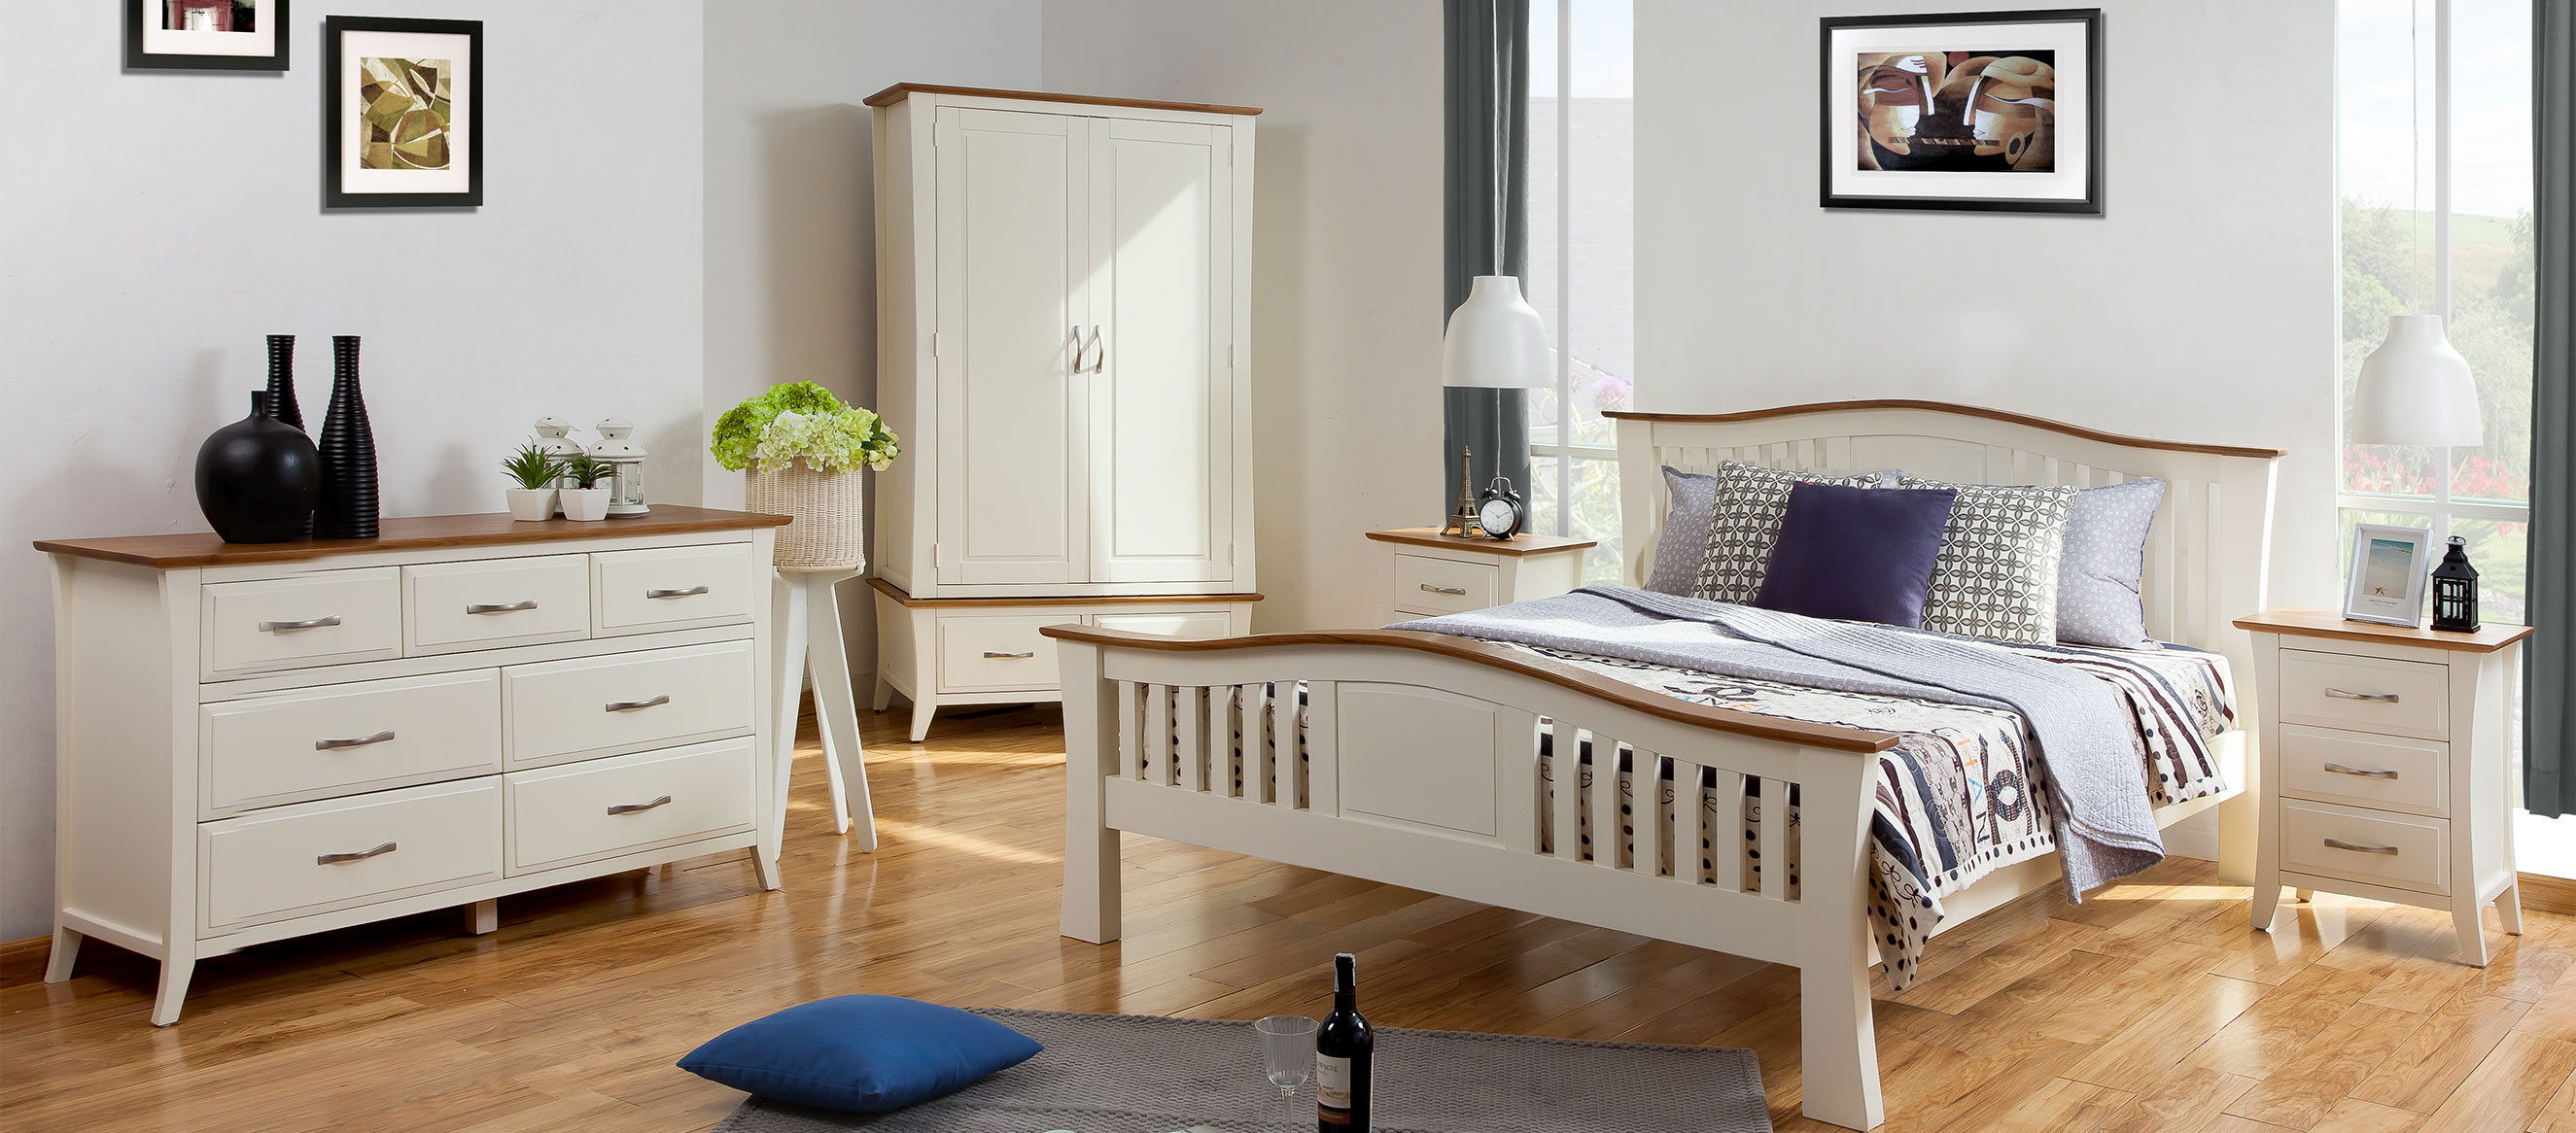 Samara Collection Bedroom Furniture Range